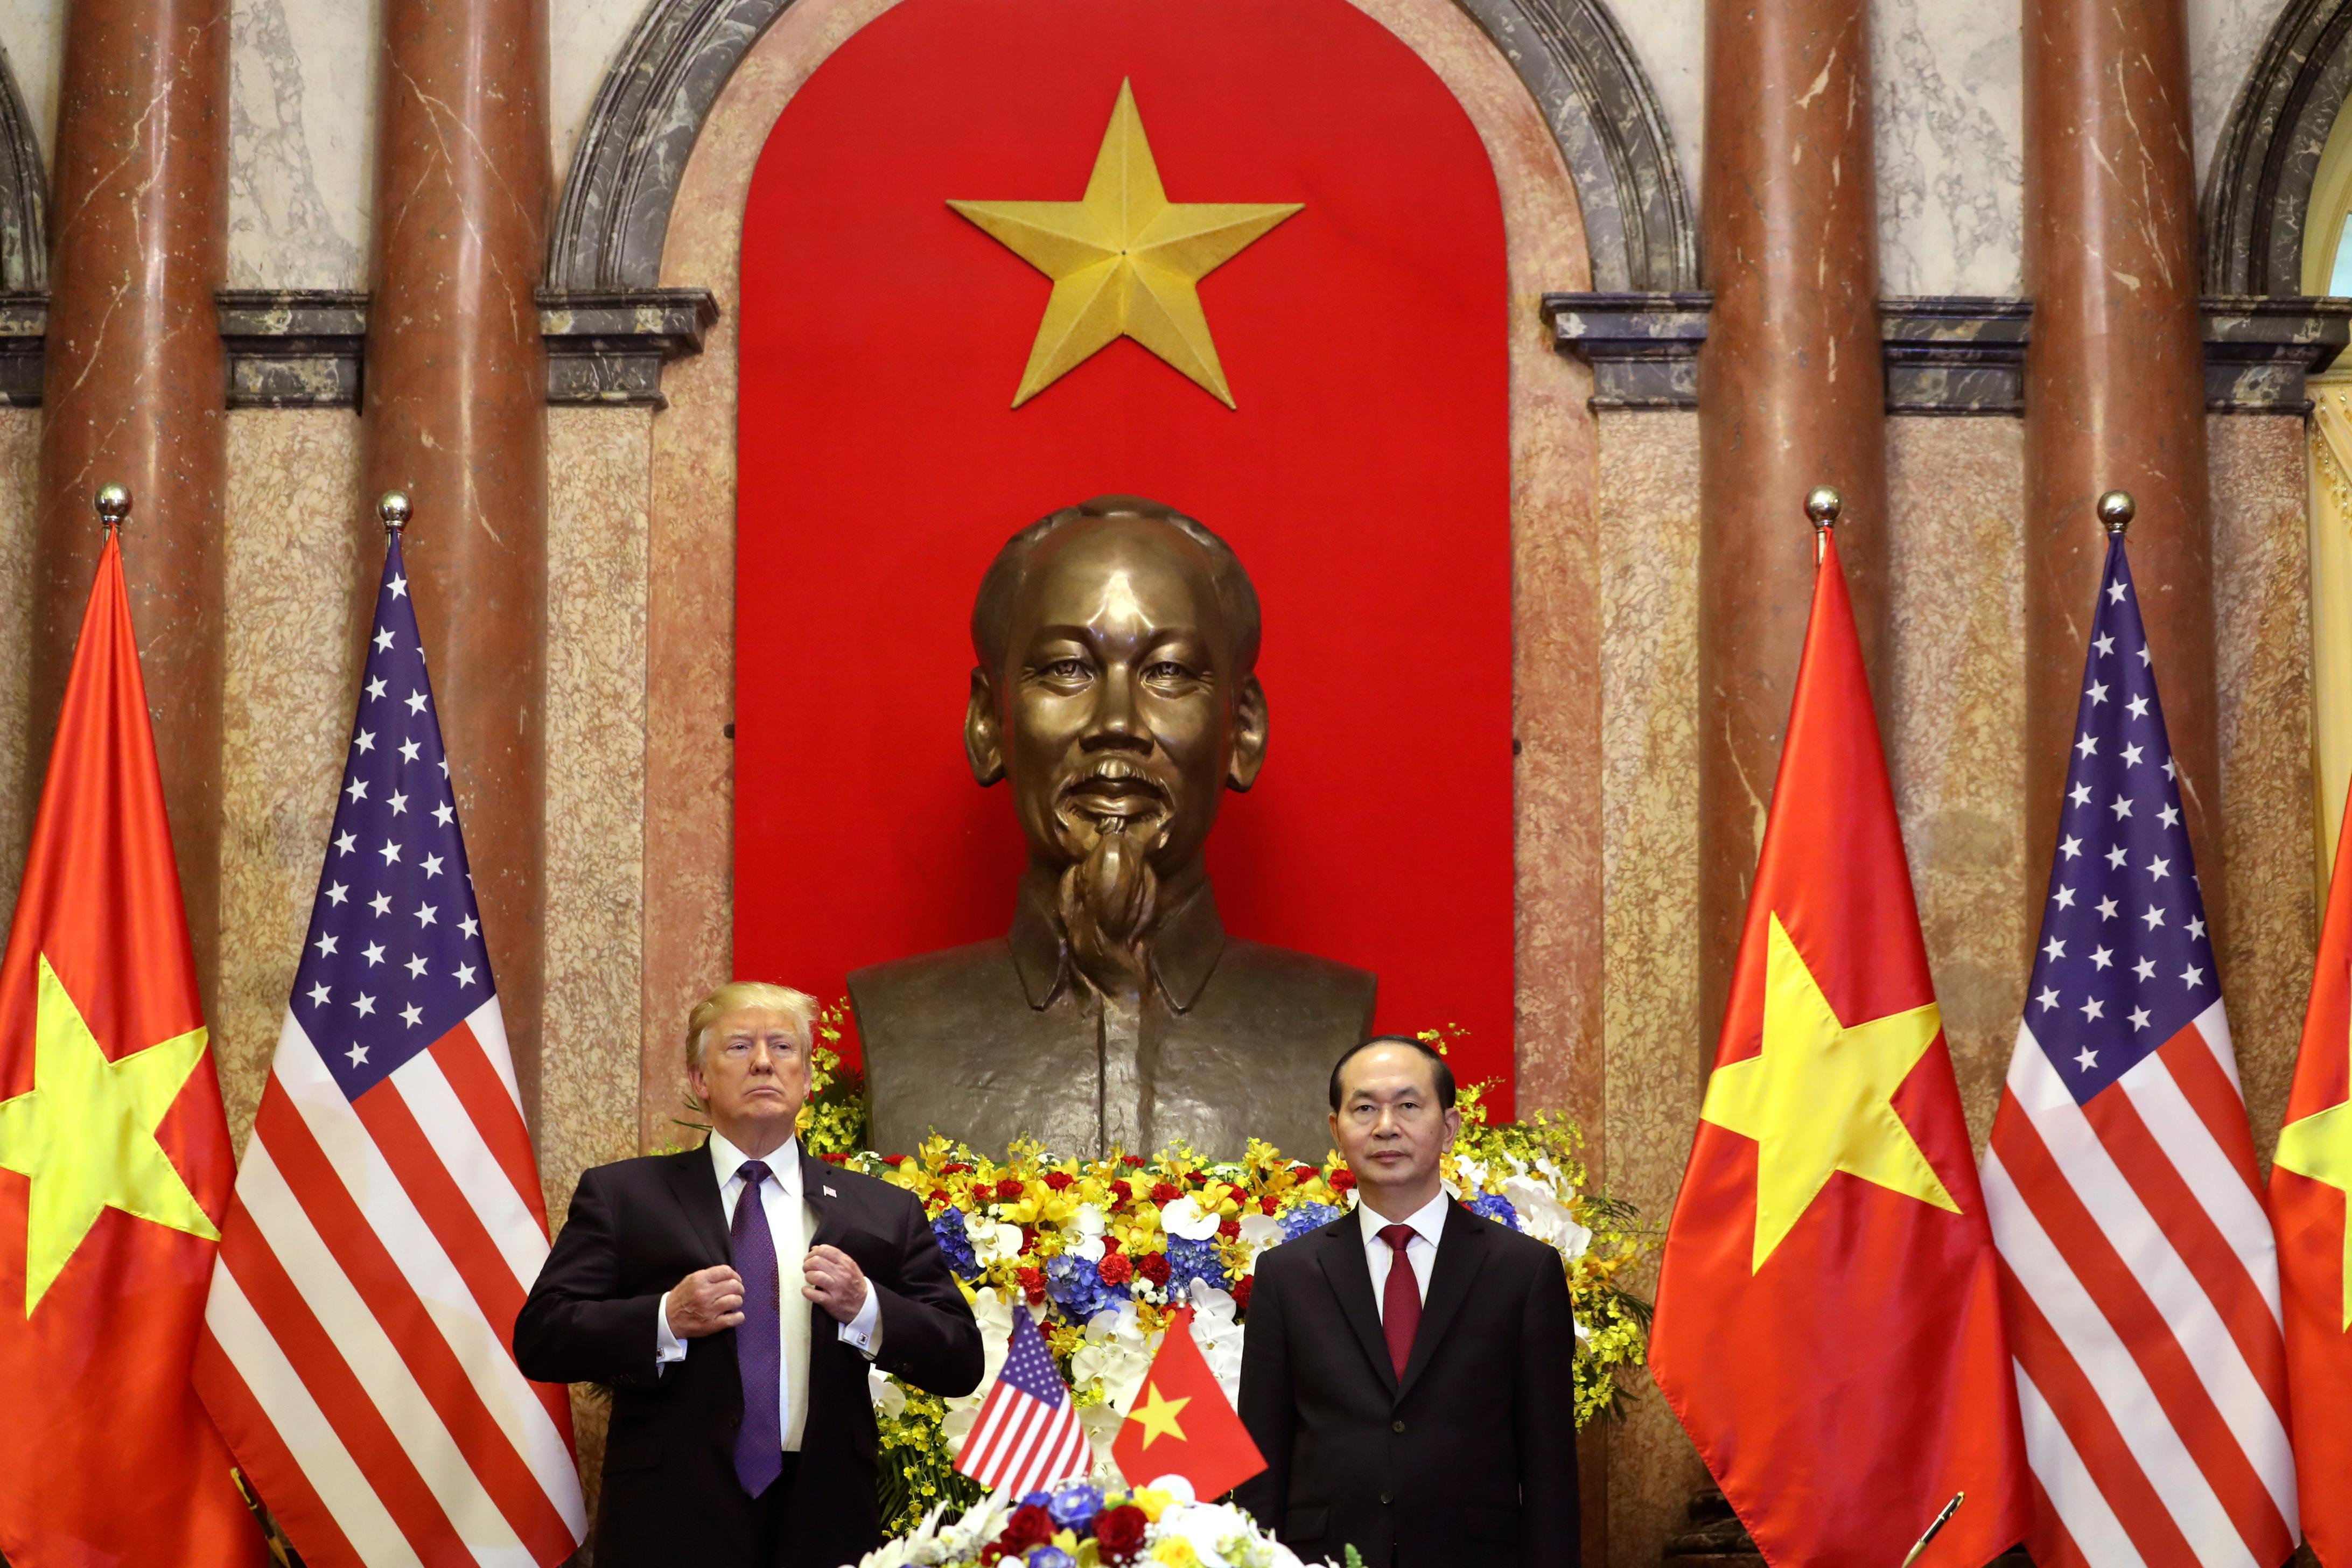 President Donald Trump, left, and Vietnamese President Tran Dai Quang pose for photographers at the Presidential Palace, Sunday, Nov. 12, 2017, in Hanoi, Vietnam. Trump is on a five country trip through Asia traveling to Japan, South Korea, China, Vietnam and the Philippines. (AP Photo/Andrew Harnik)